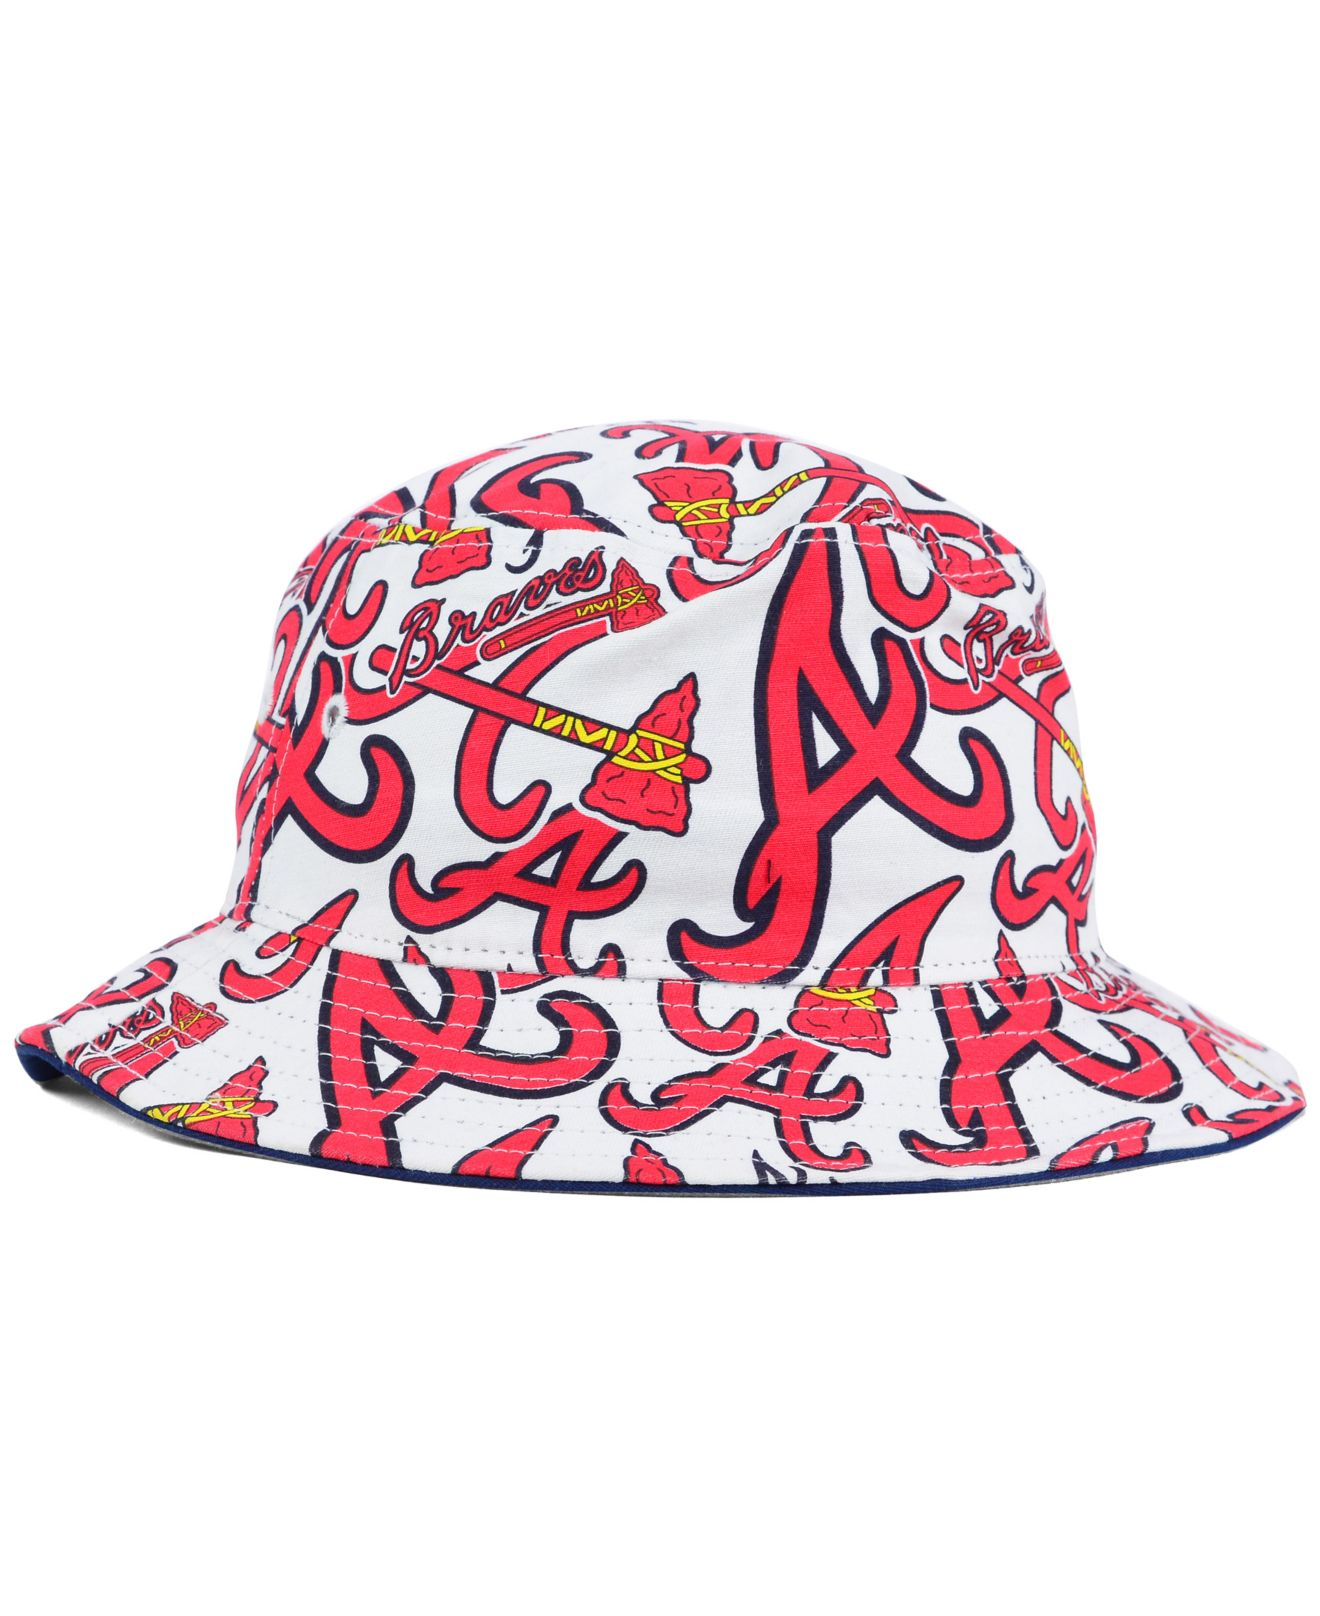 Lyst - 47 Brand Atlanta Braves Bravado Bucket Hat in Red for Men de6c1cc1c82c